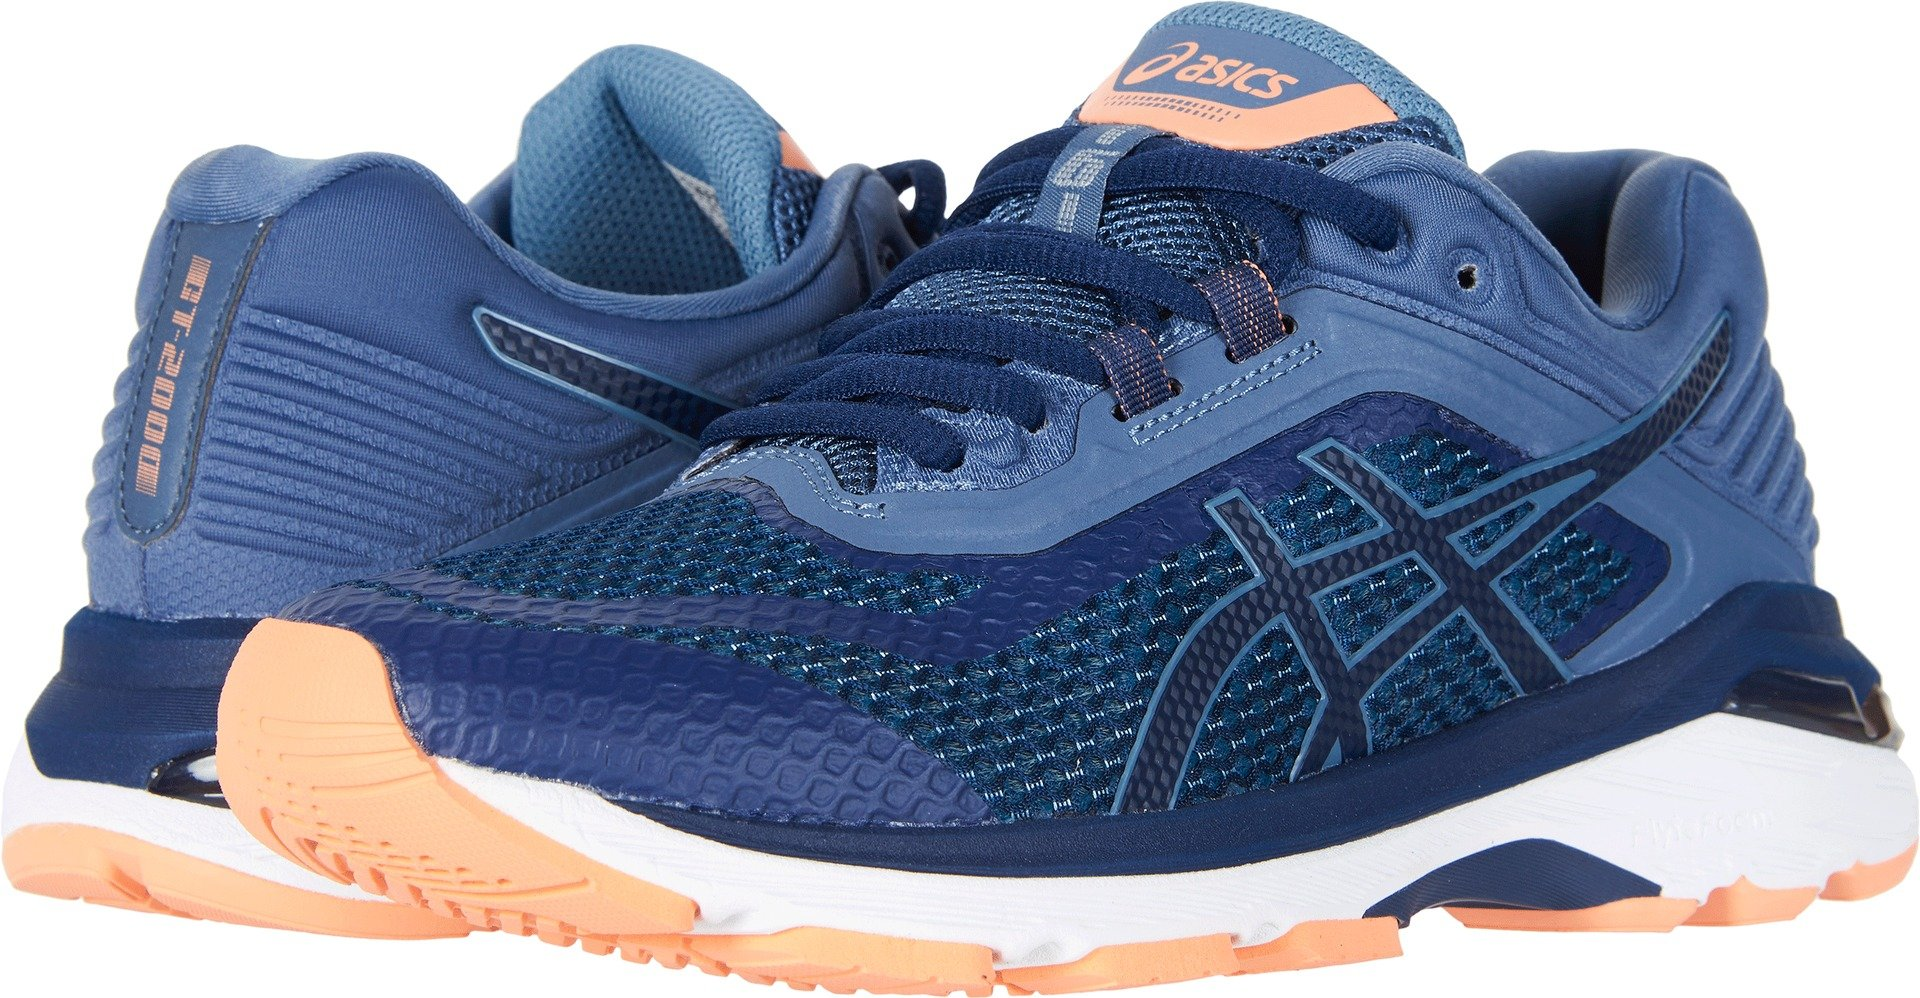 ASICS GT-2000 6 (D) Women's Running Shoes Indigo Blue/Indigo Blue/Smoke Blue 8